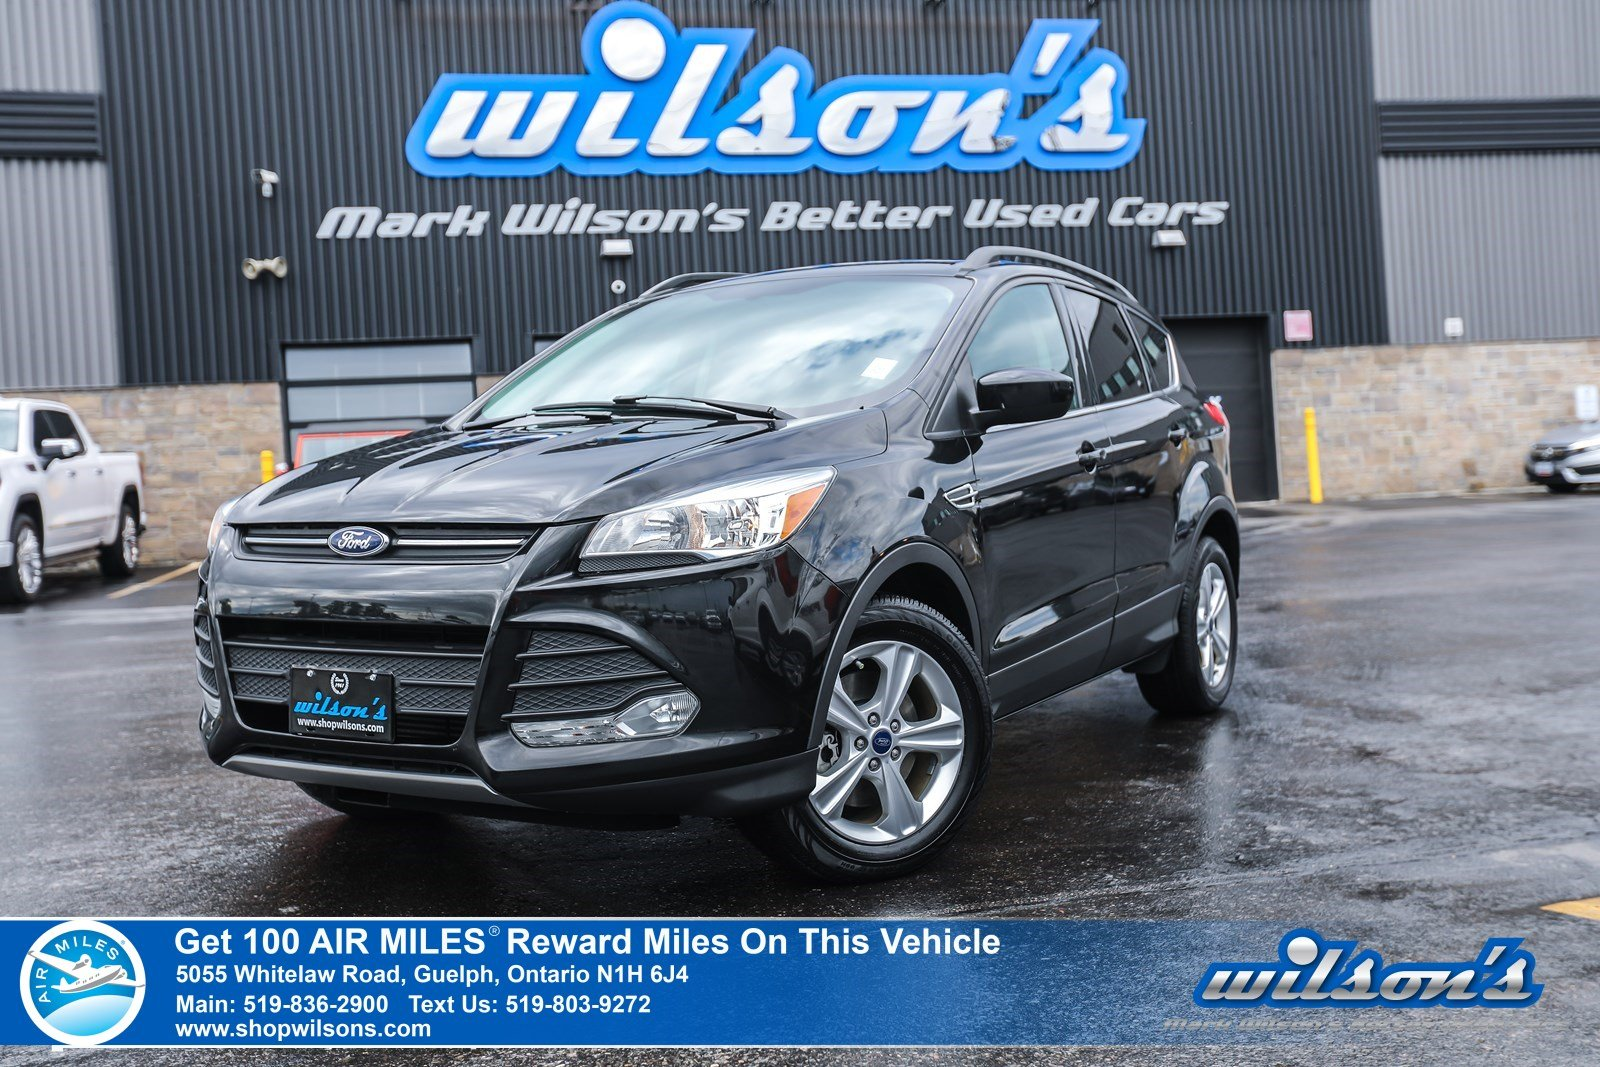 Certified Pre-Owned 2015 Ford Escape SE - 4X4, Leather, Navigation, Power + Heated Seats, Bluetooth, Alloy Wheels and more!